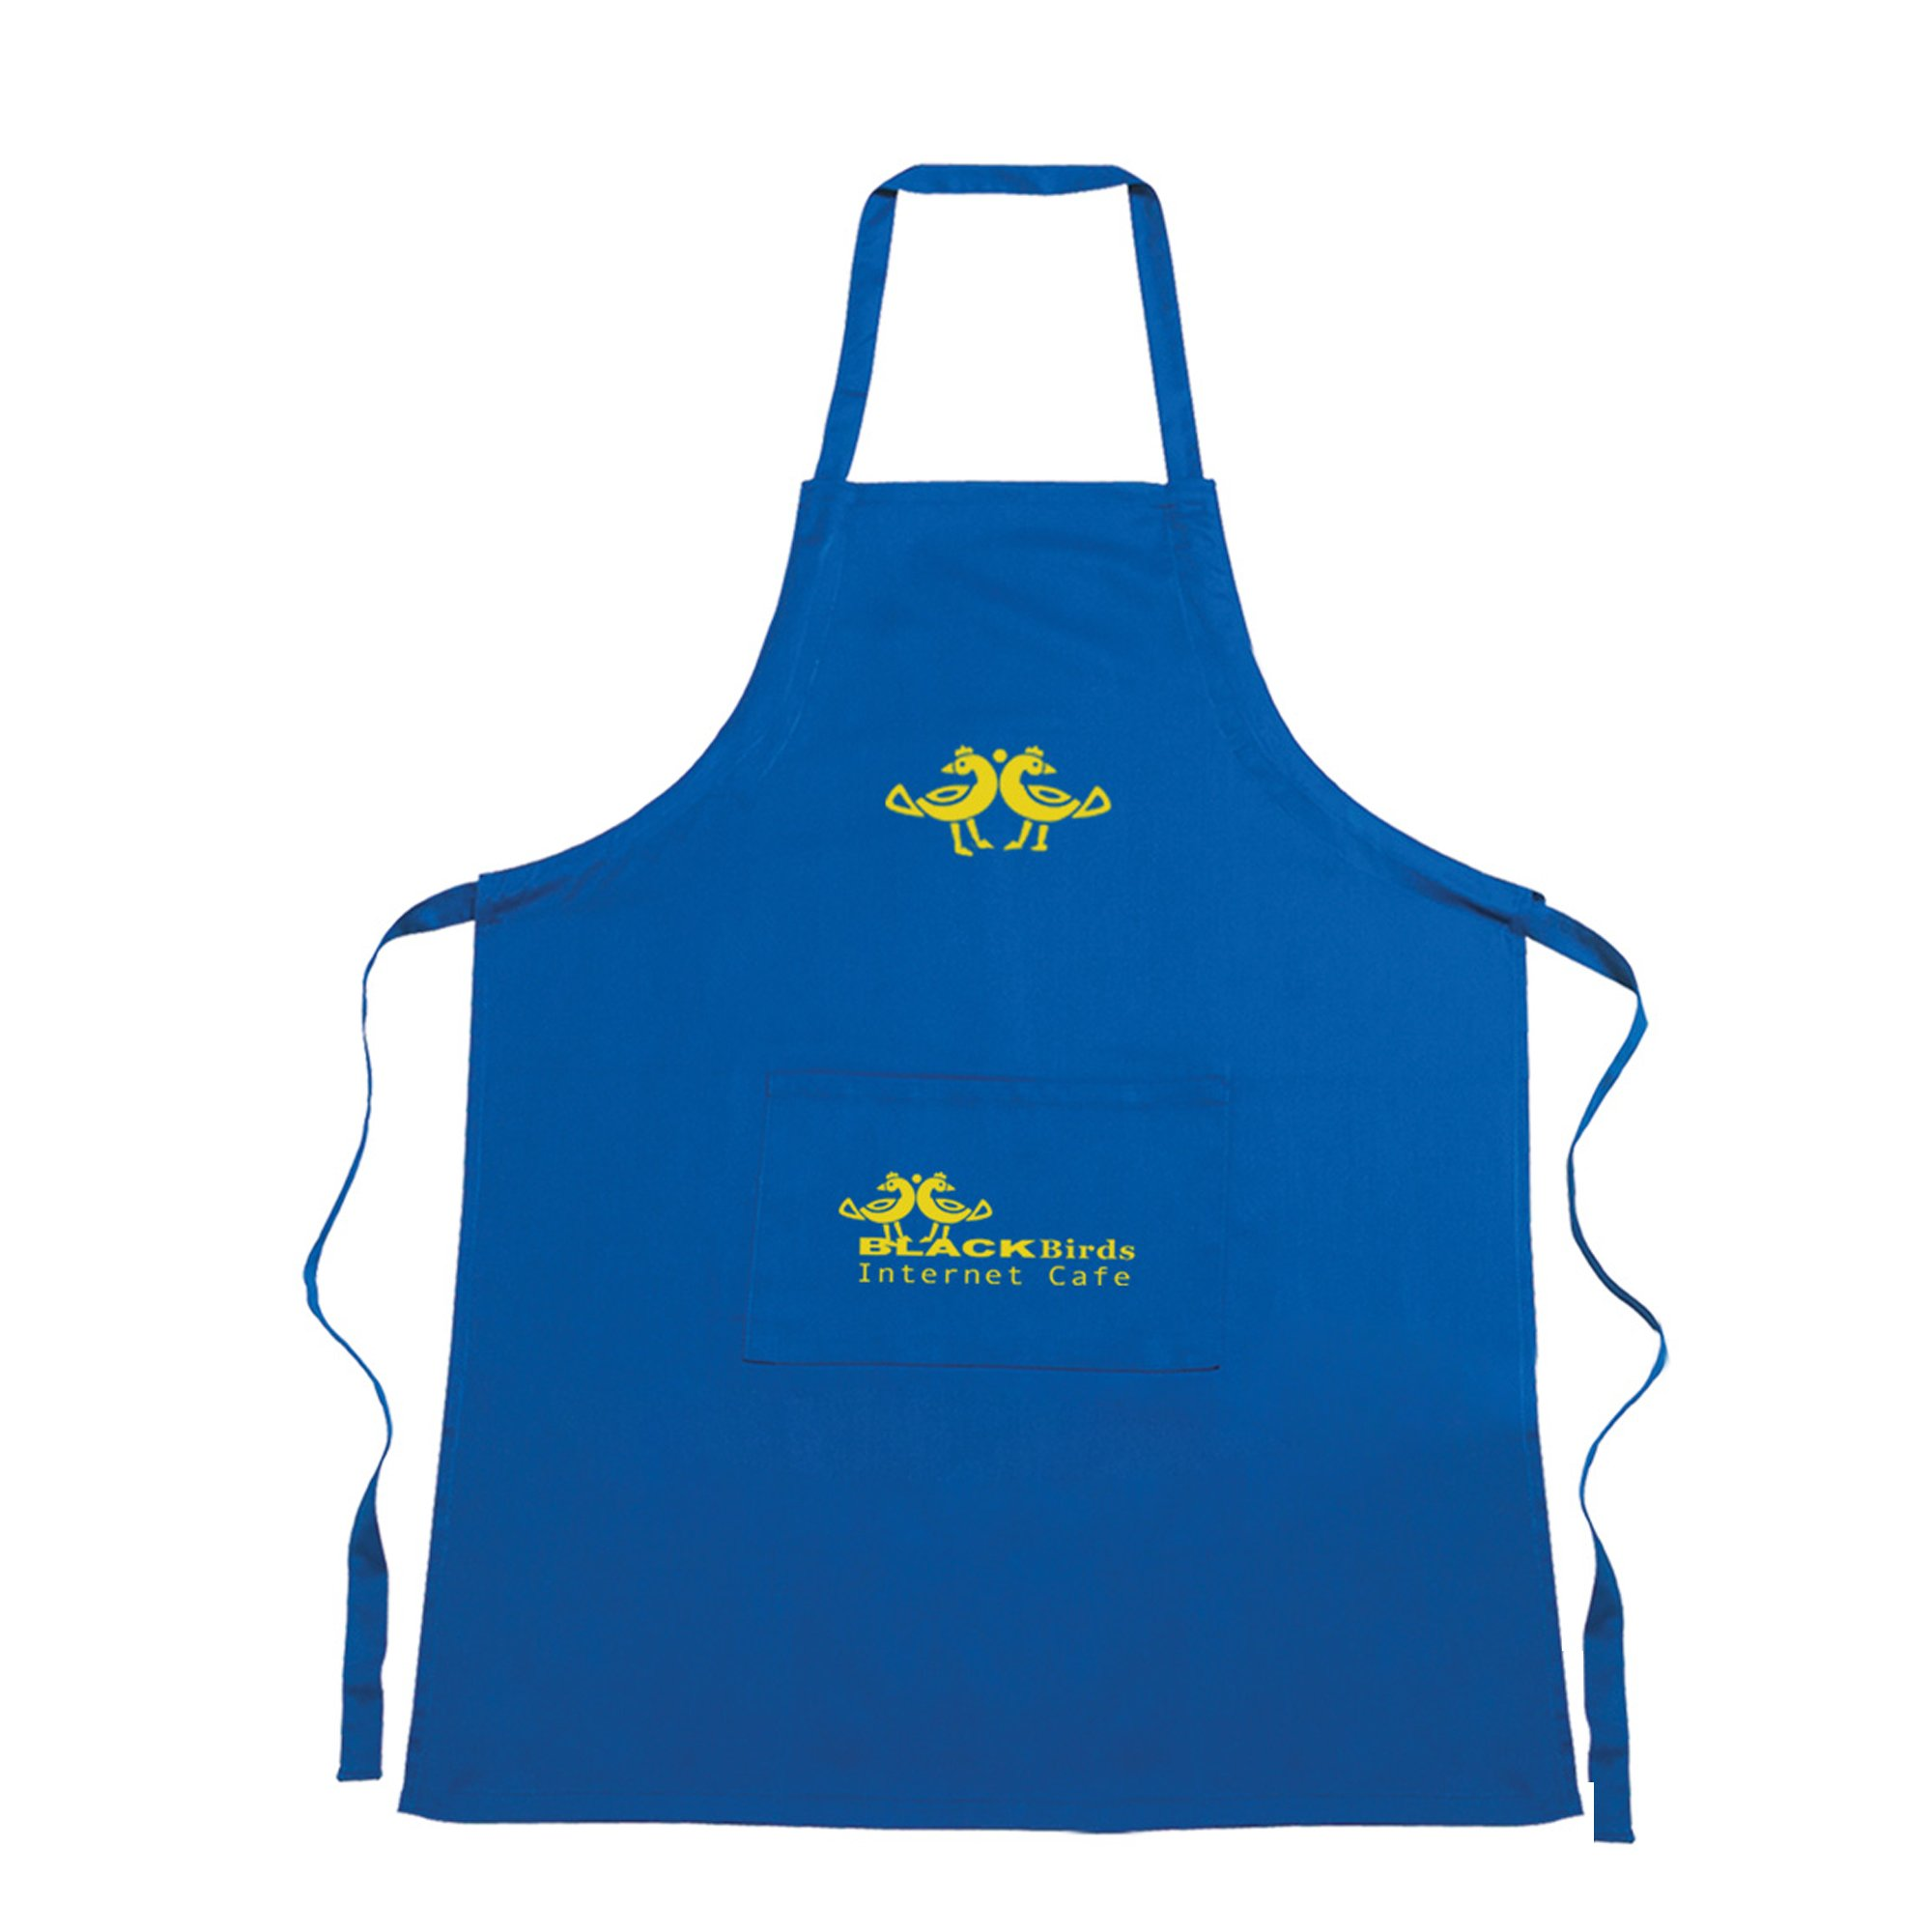 Stay clean and comfy in the kitchen and advertise your brand at the same time!  Show off your logo by giving away these aprons made from 100% pure cotton at your next tradeshow or promotional company event. With you brand name on these aprons, you're sure to stand out!